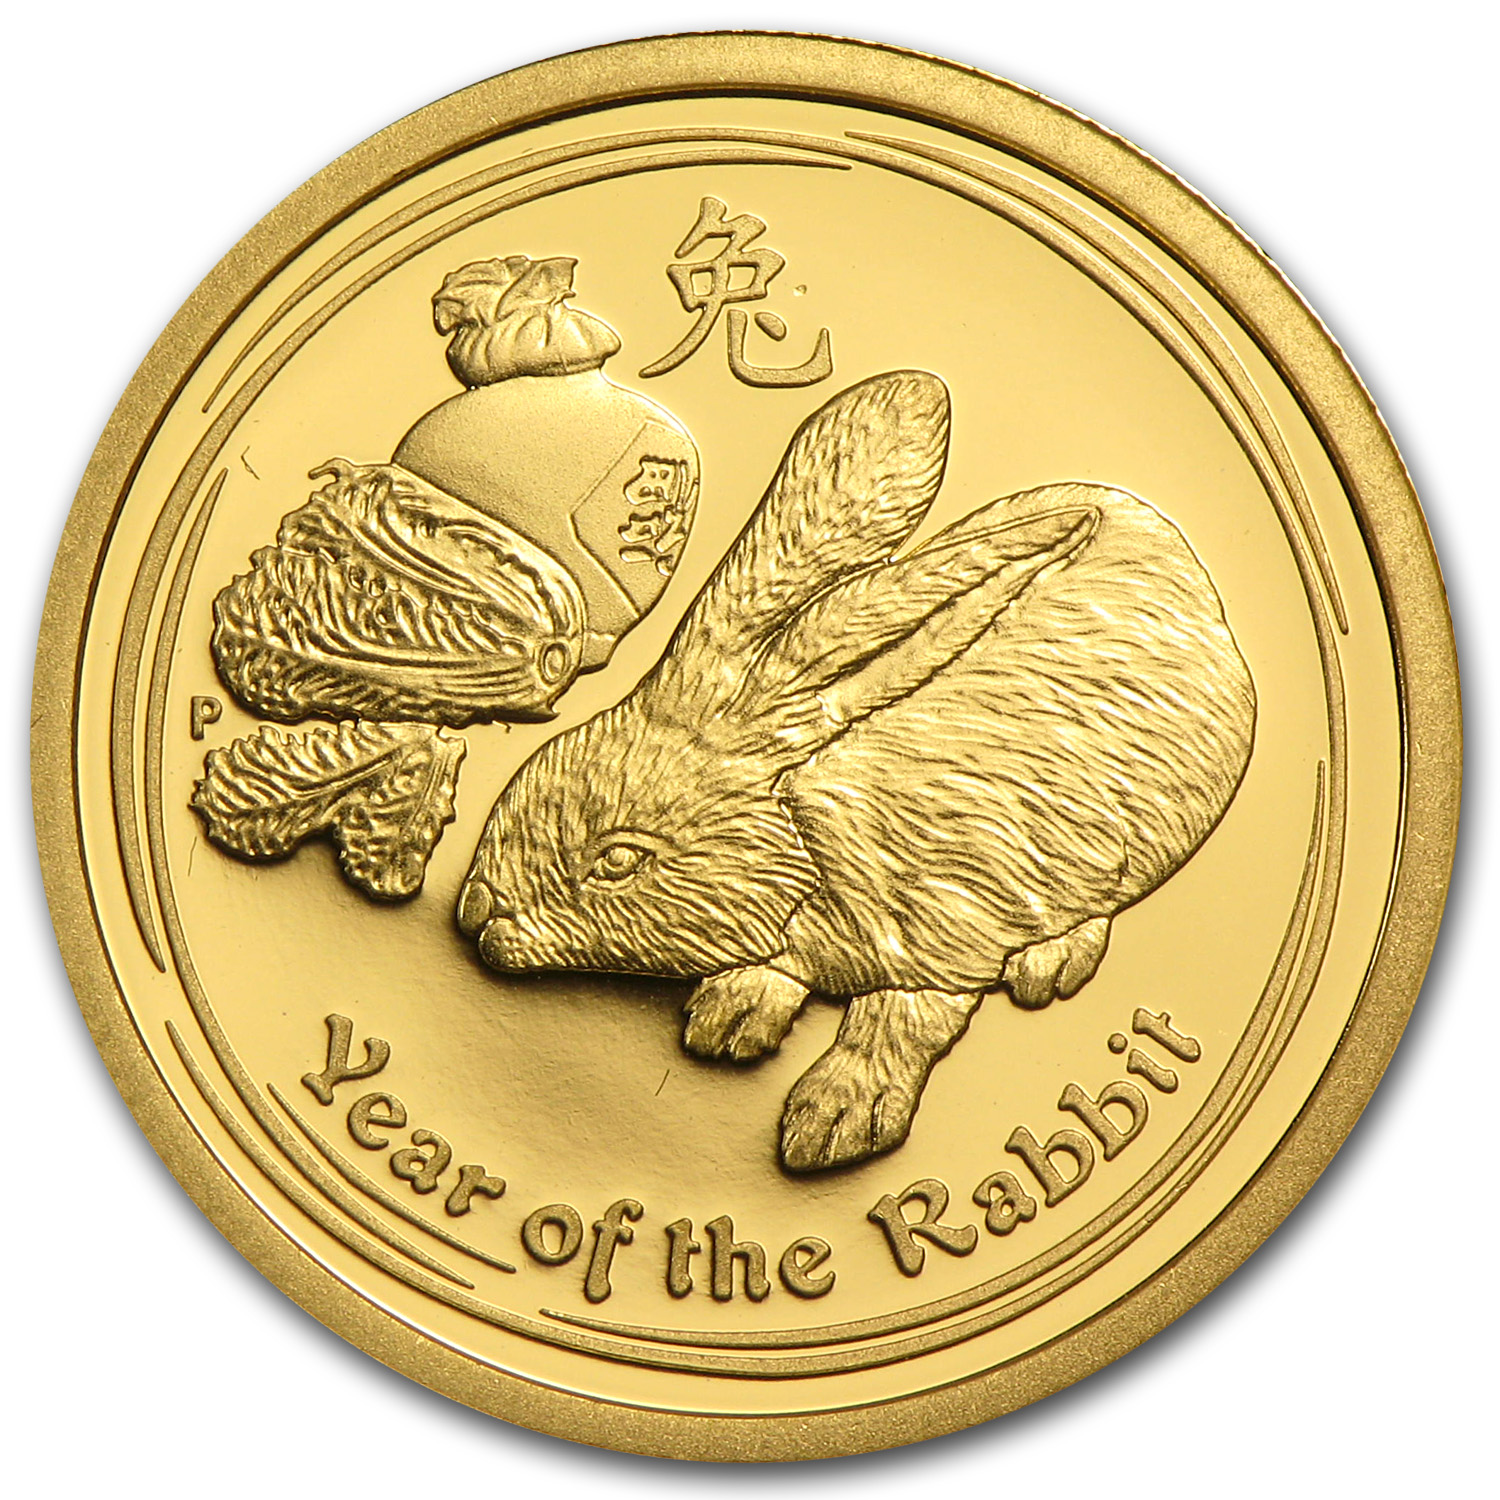 2011 1/4 oz Proof Gold Lunar Year of the Rabbit (Series II)